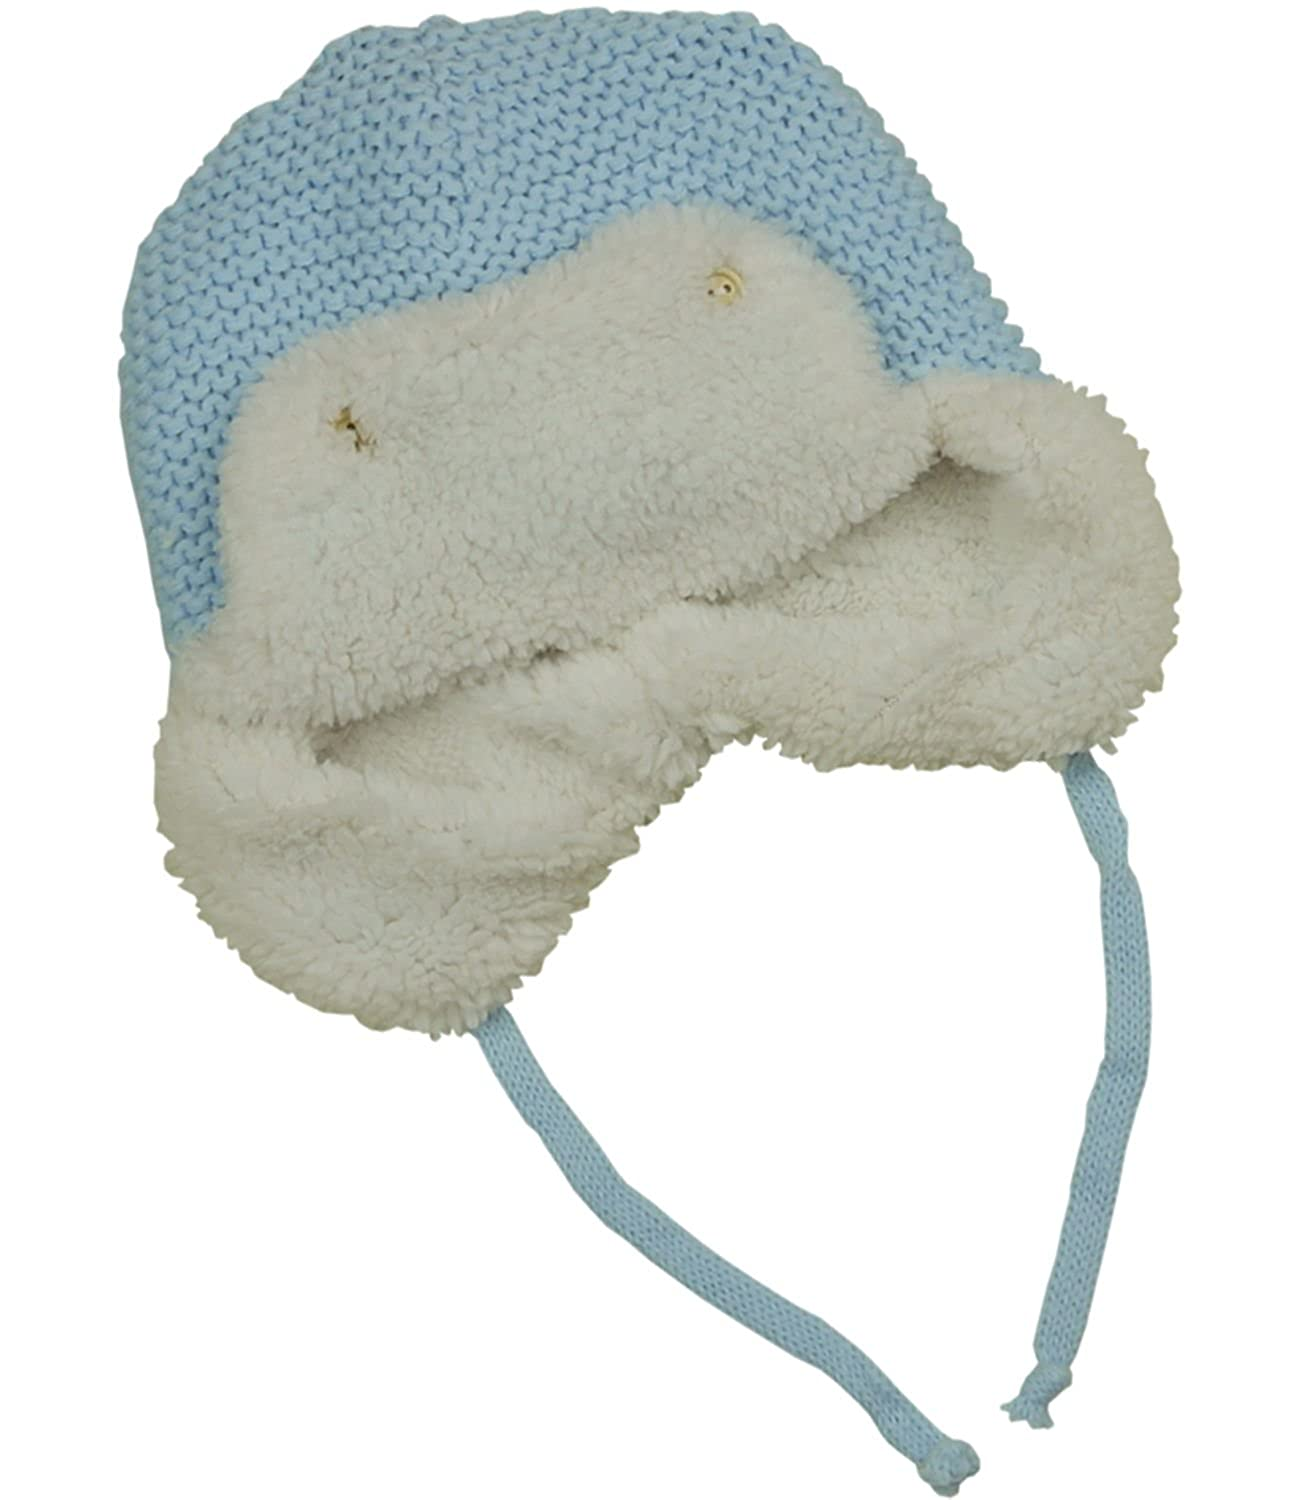 c0682c633 Amazon.com: BabyPrem Baby Hat Waffle Knit Trapper Fleece Lining ...